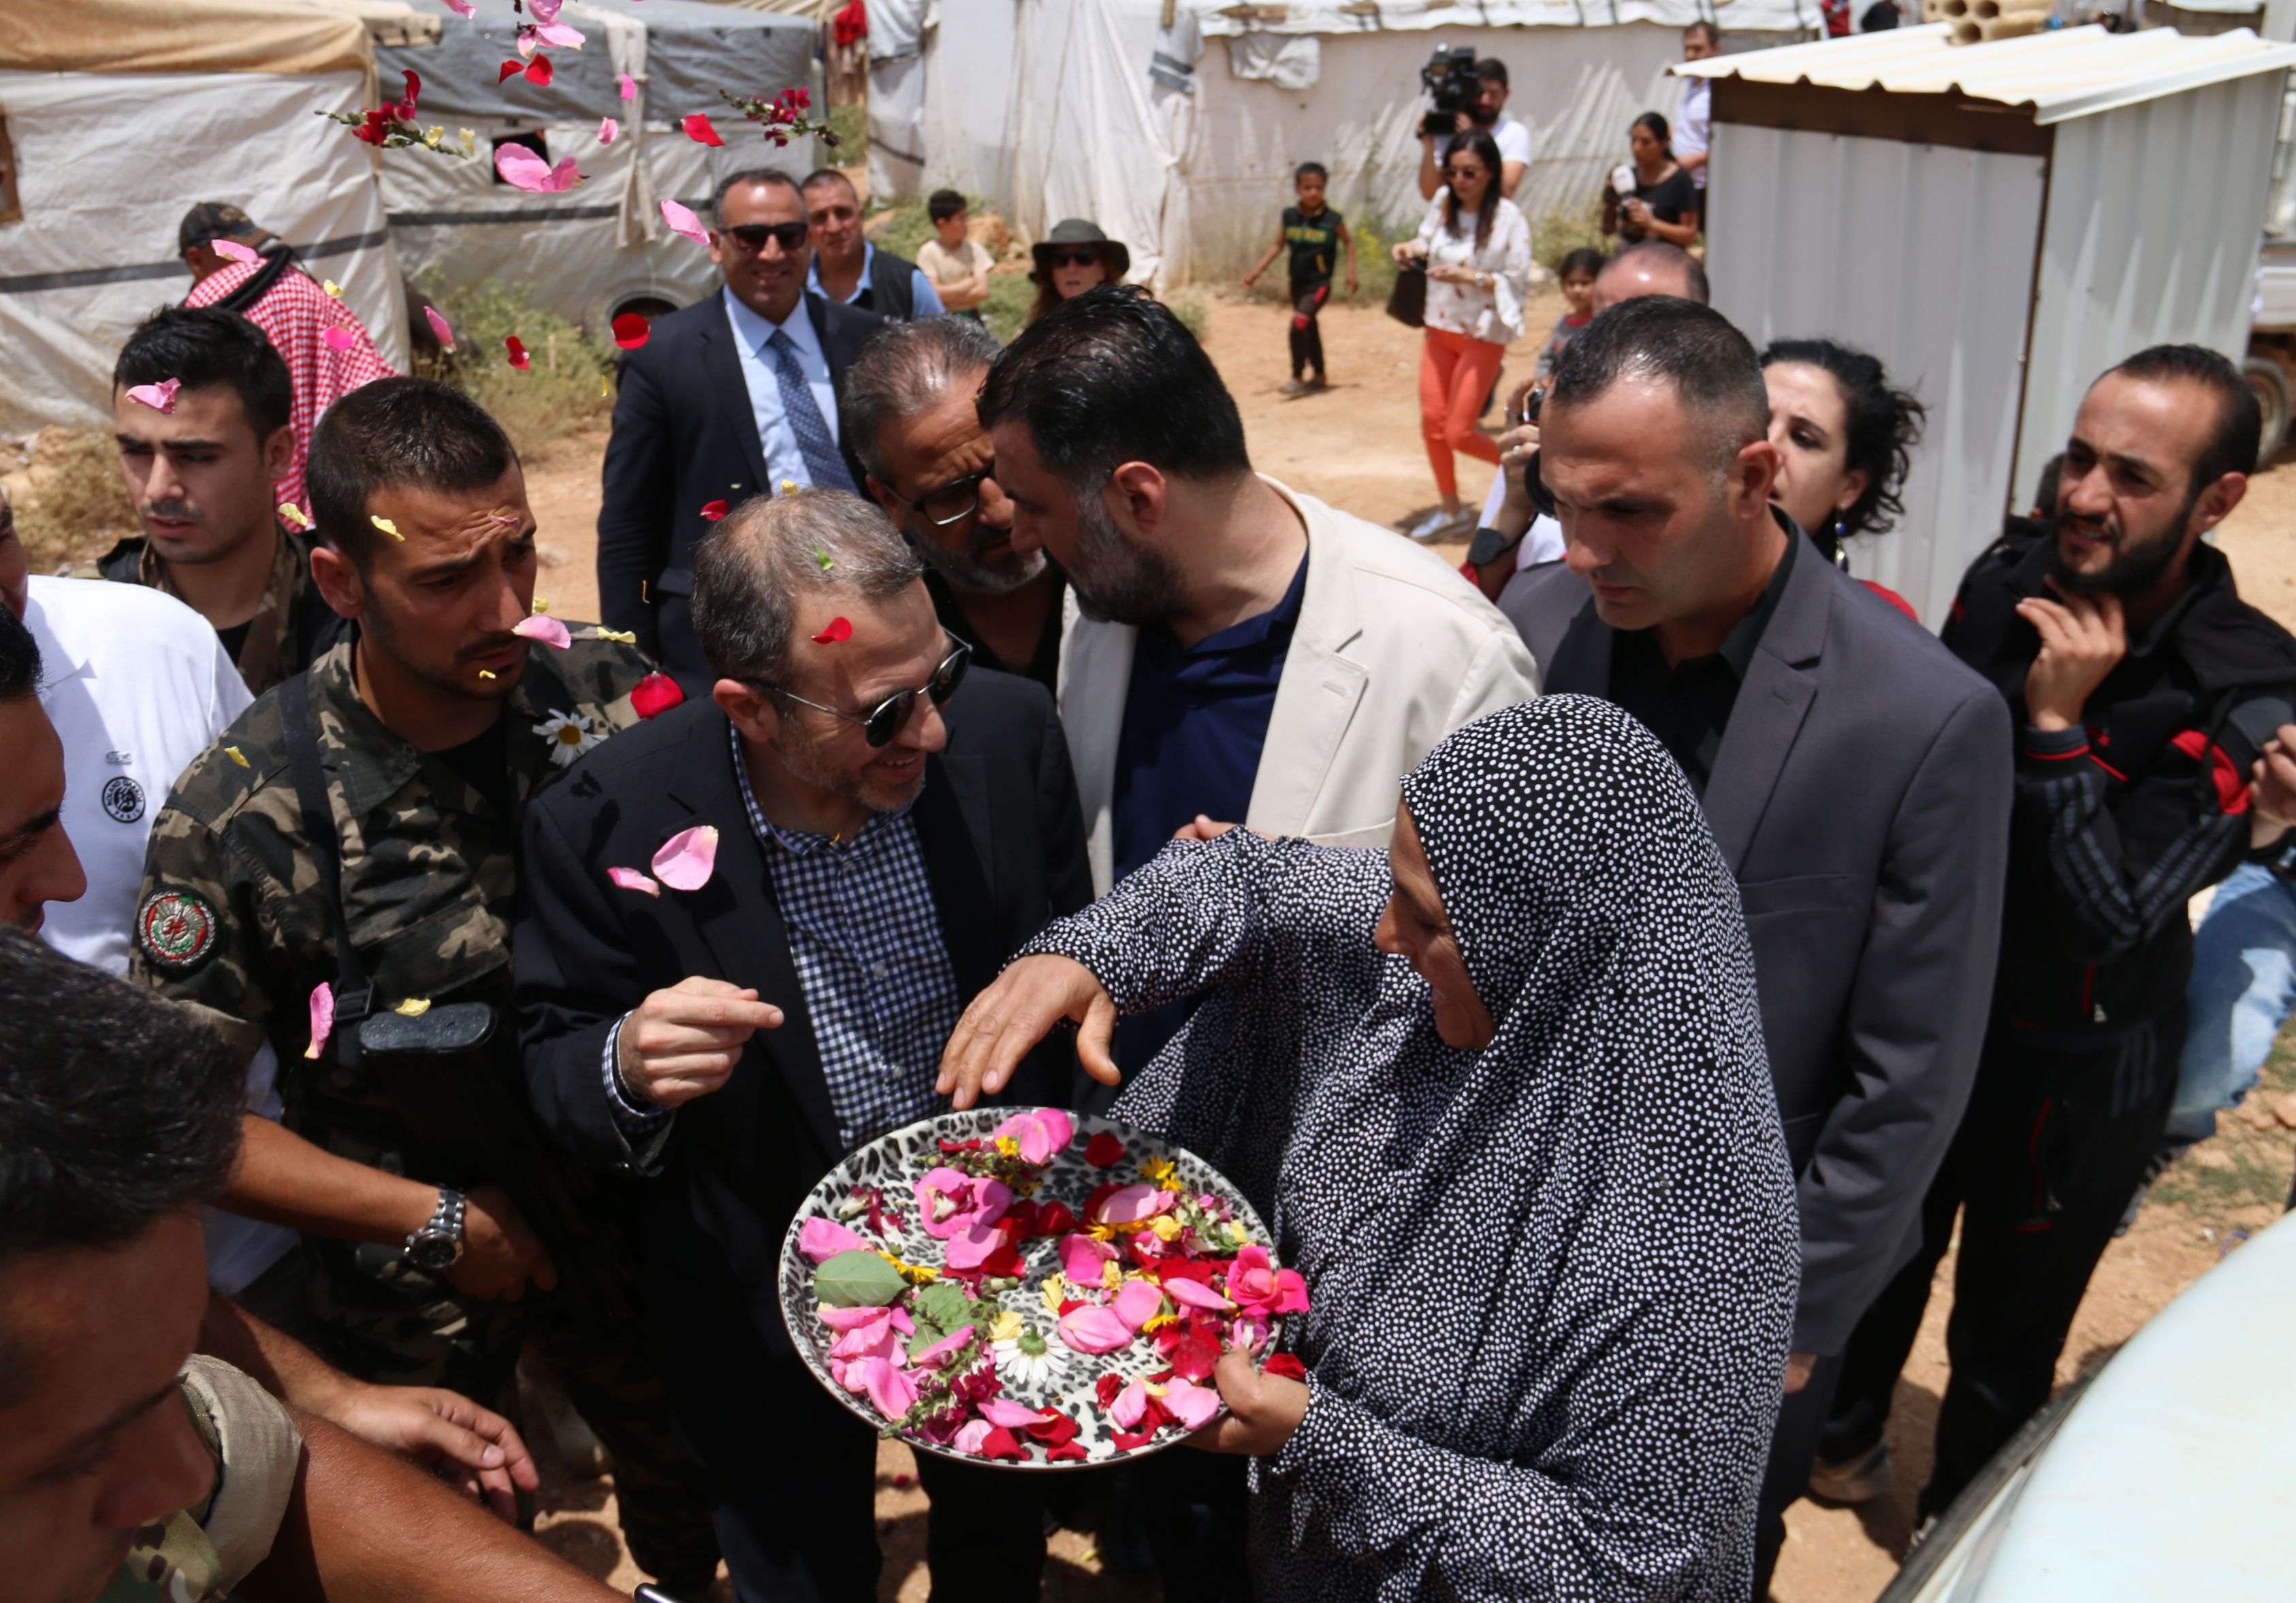 Lebanese Minister of Foreign Affairs and Expatriation Gebran Bassil (C) is greeted with flower petals at a Syrian refugee camp in the town of Arsal on the eastern border with Syria, on June 13, 2018. (AFP)